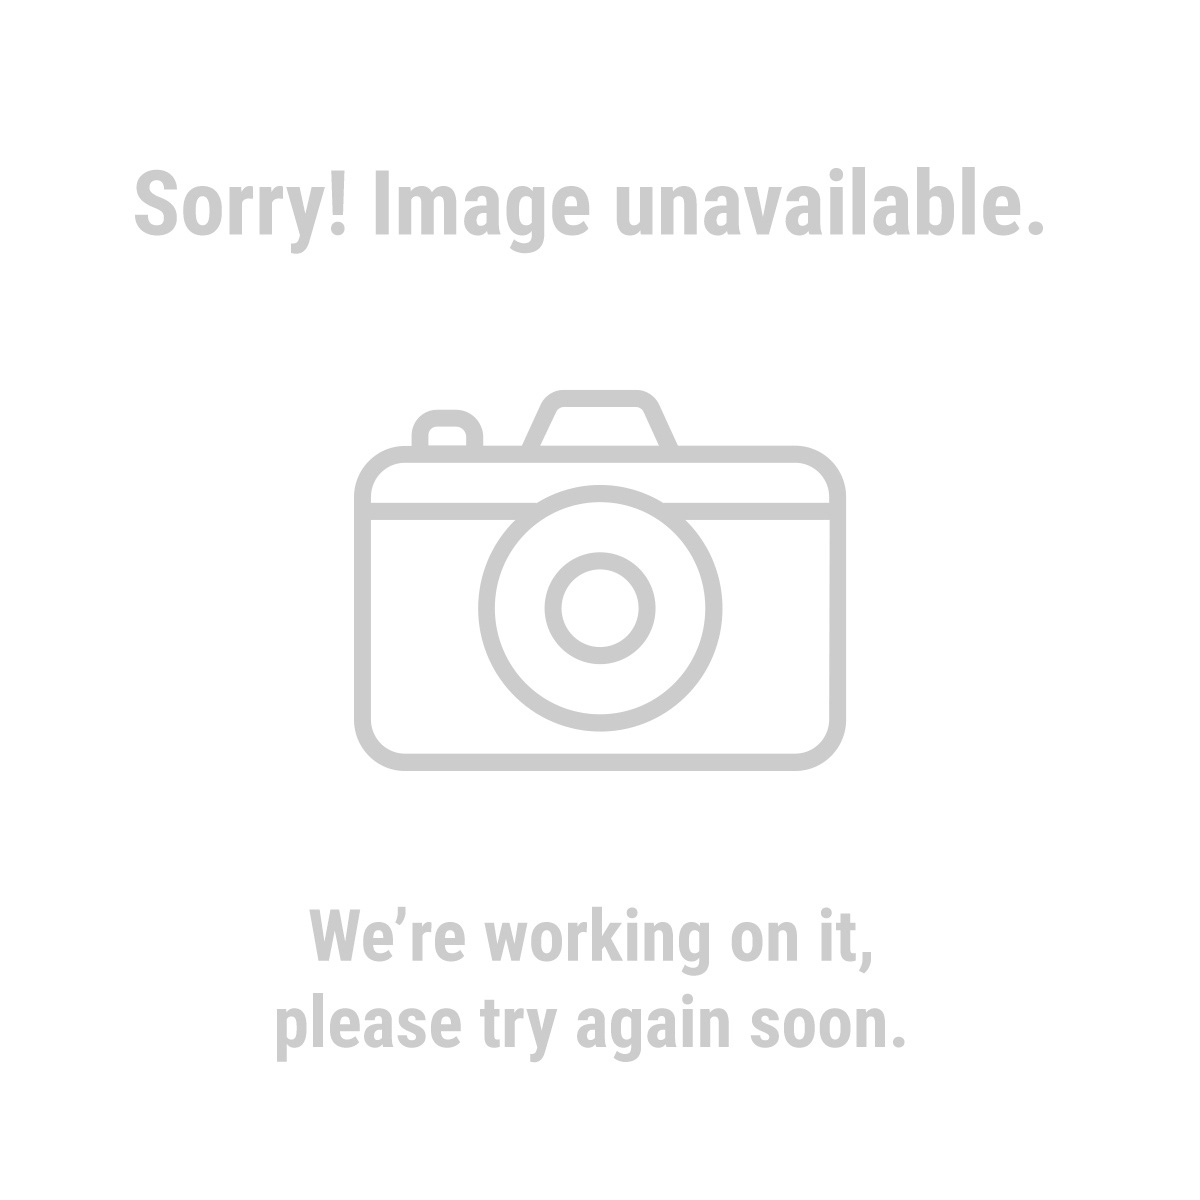 IRON ARMOR® 60783 Truck Bed Coating - 16-1/2 Oz.